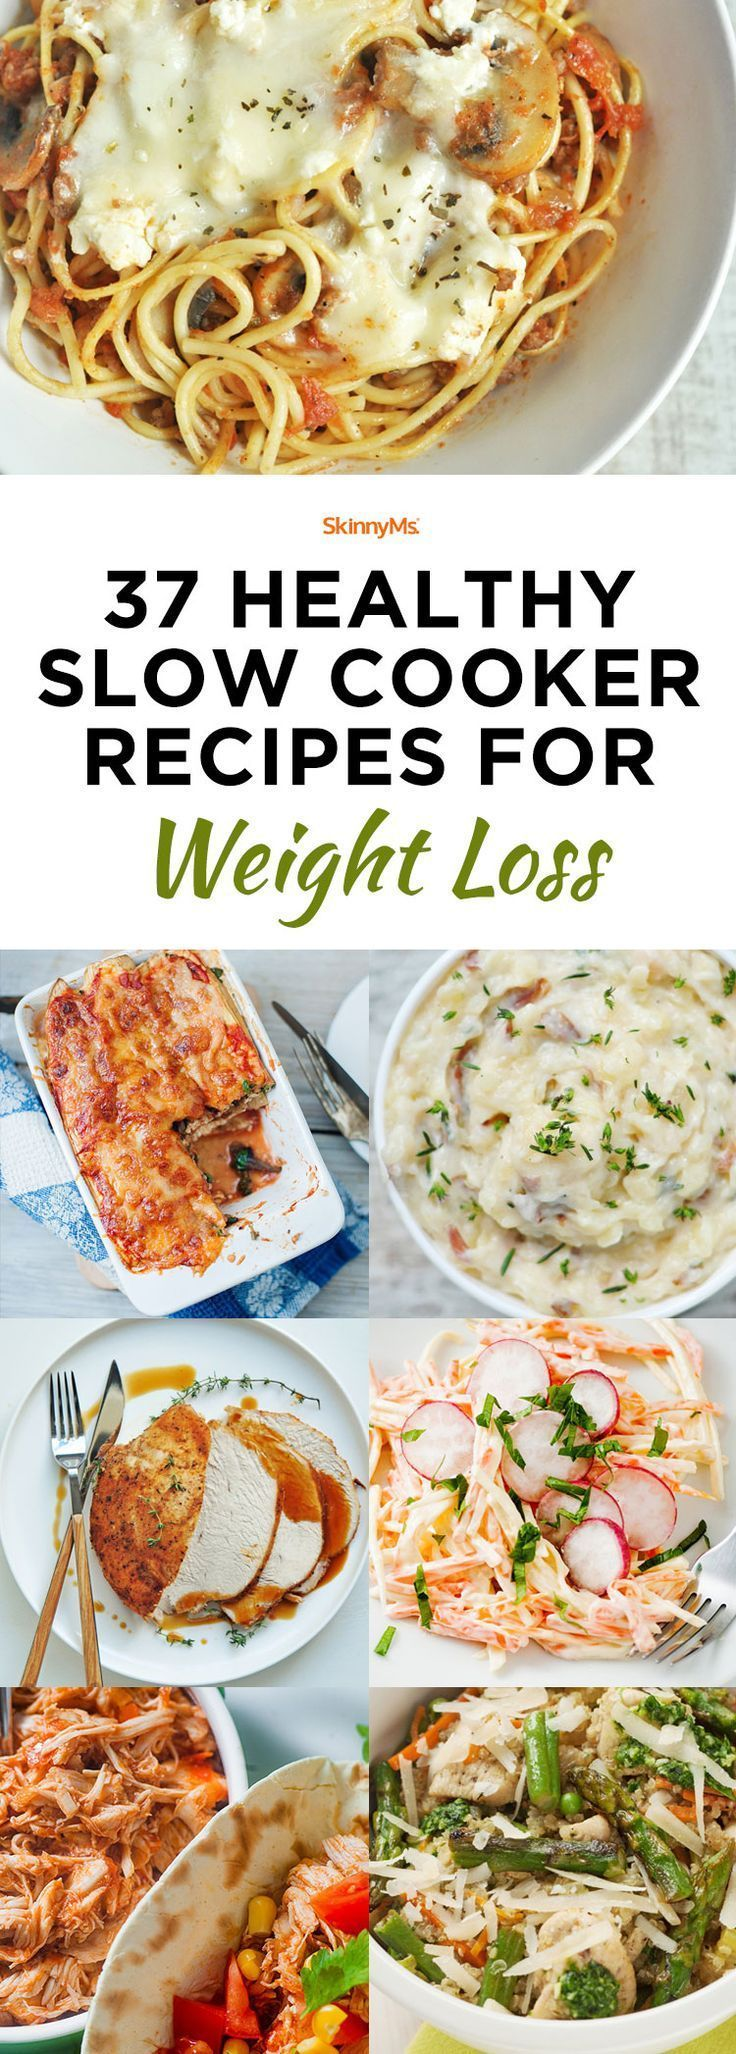 37 Healthy Slow Cooker Recipes for Weight Loss